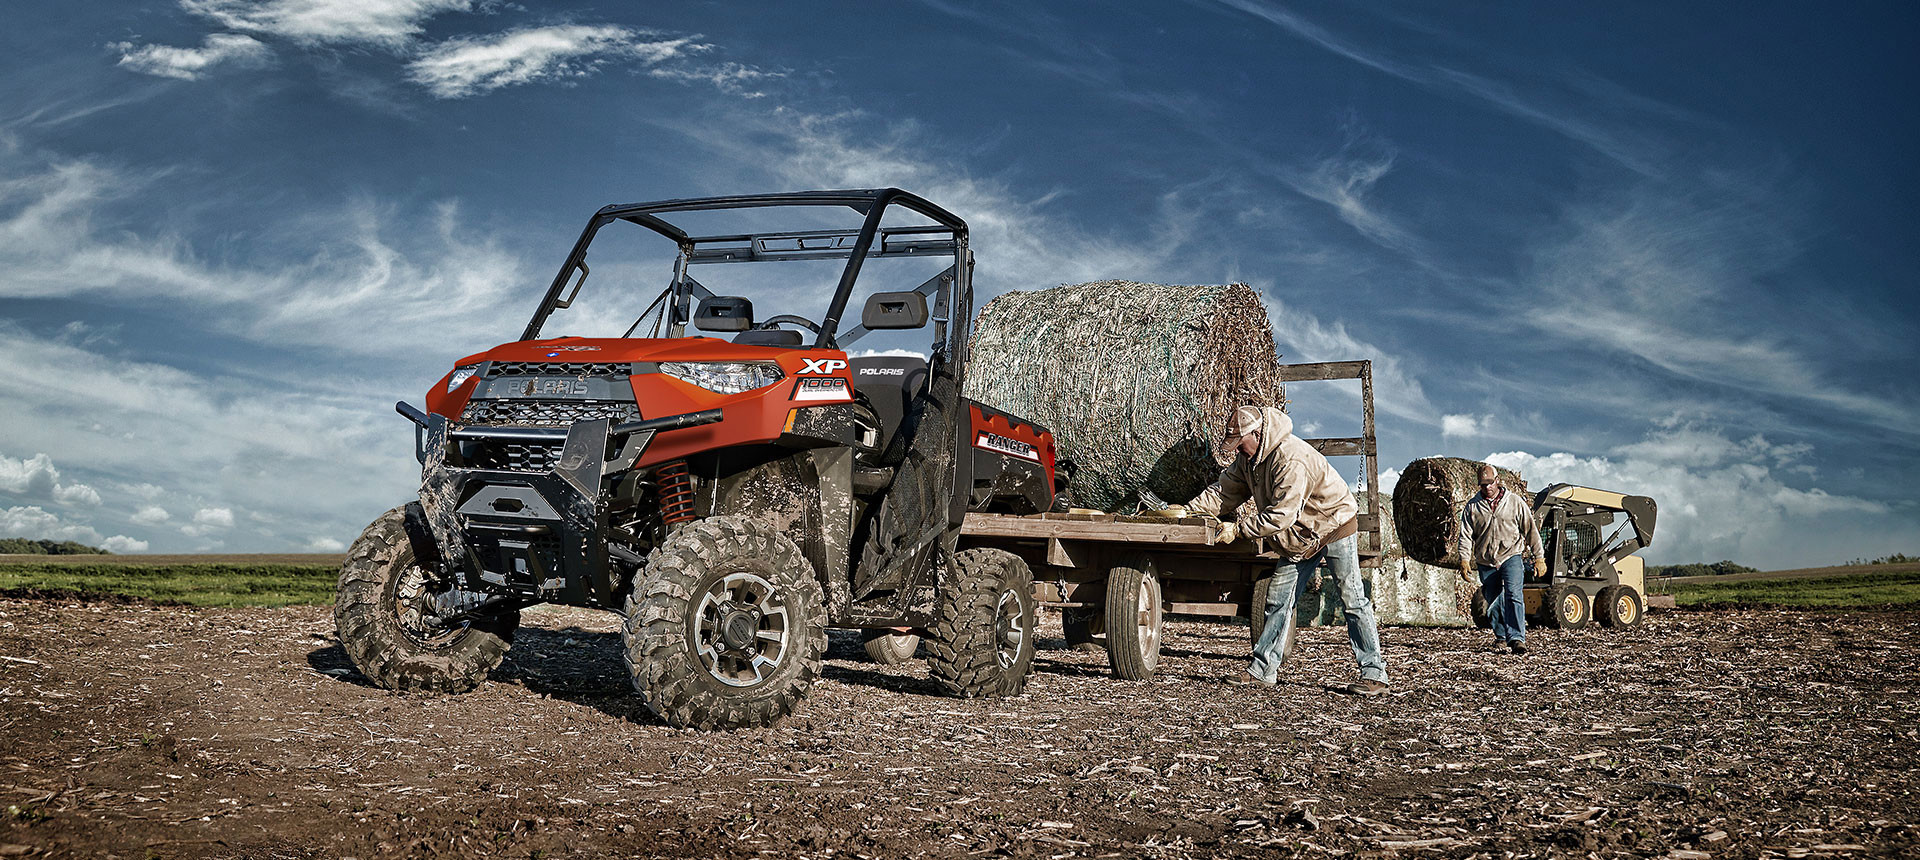 2020 RANGER® XP 1000 Texas Edition Instagram image 5